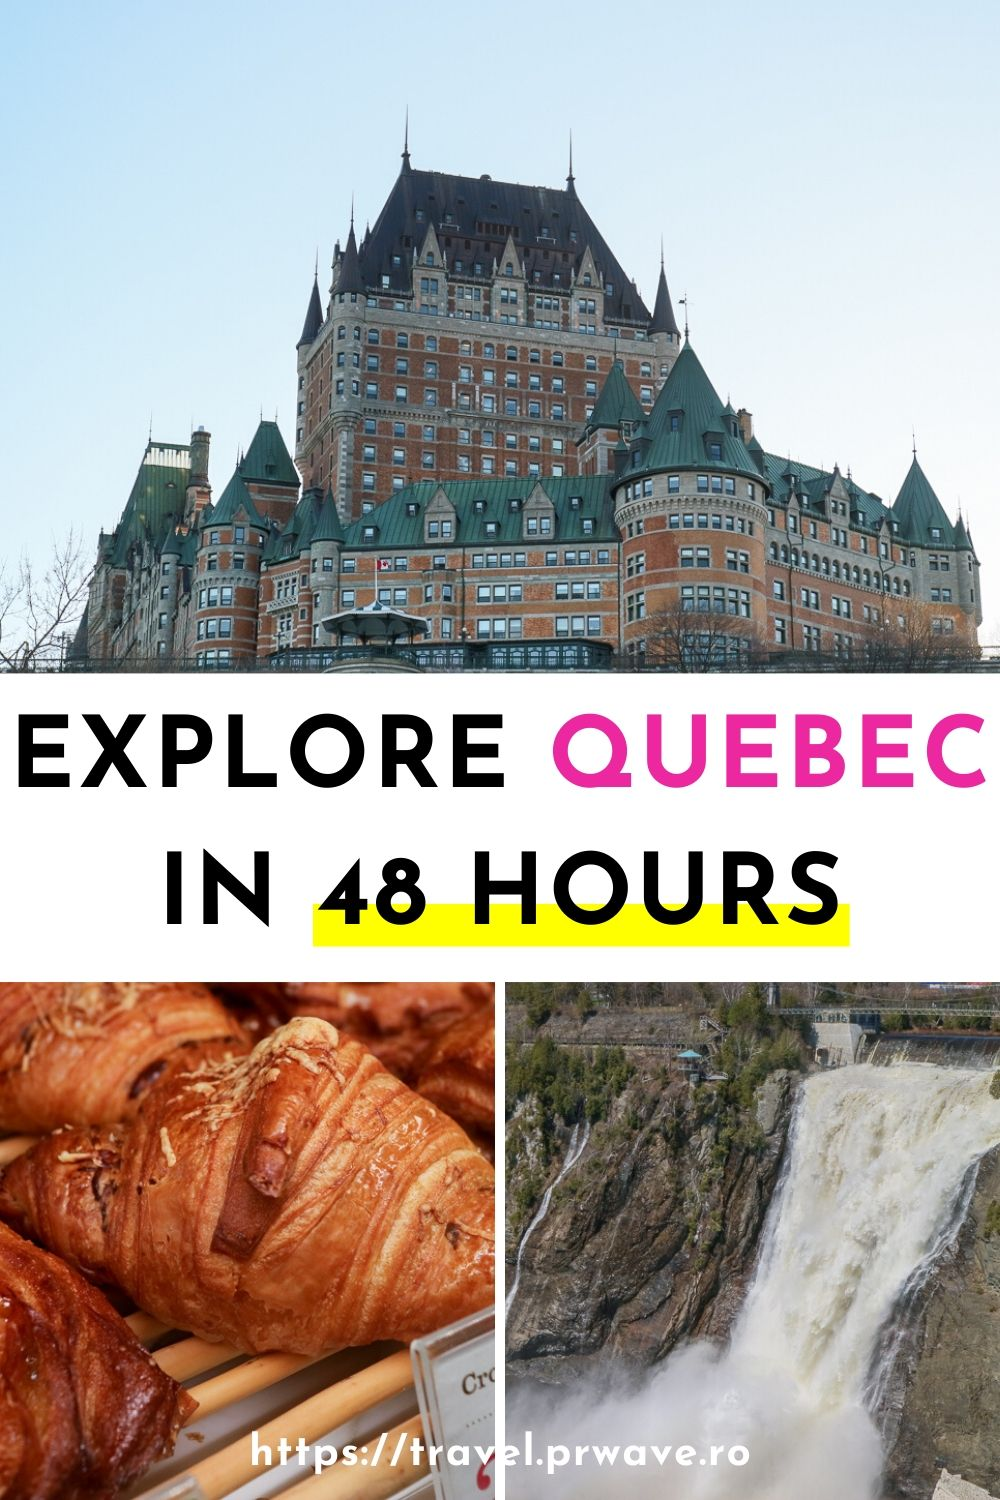 Explore Quebec in 48 hours: the best Quebec 2 day itinerary. Discover what to do in Quebec in two days from this cool itinerary for Quebec, Canada. Discover now Where to eat in Quebec and what to see and do in Quebec in 2 days! #quebec #canada #quebecitinerary #travelitinerary #travelmomentsintime #2daysinquebec #northamerica